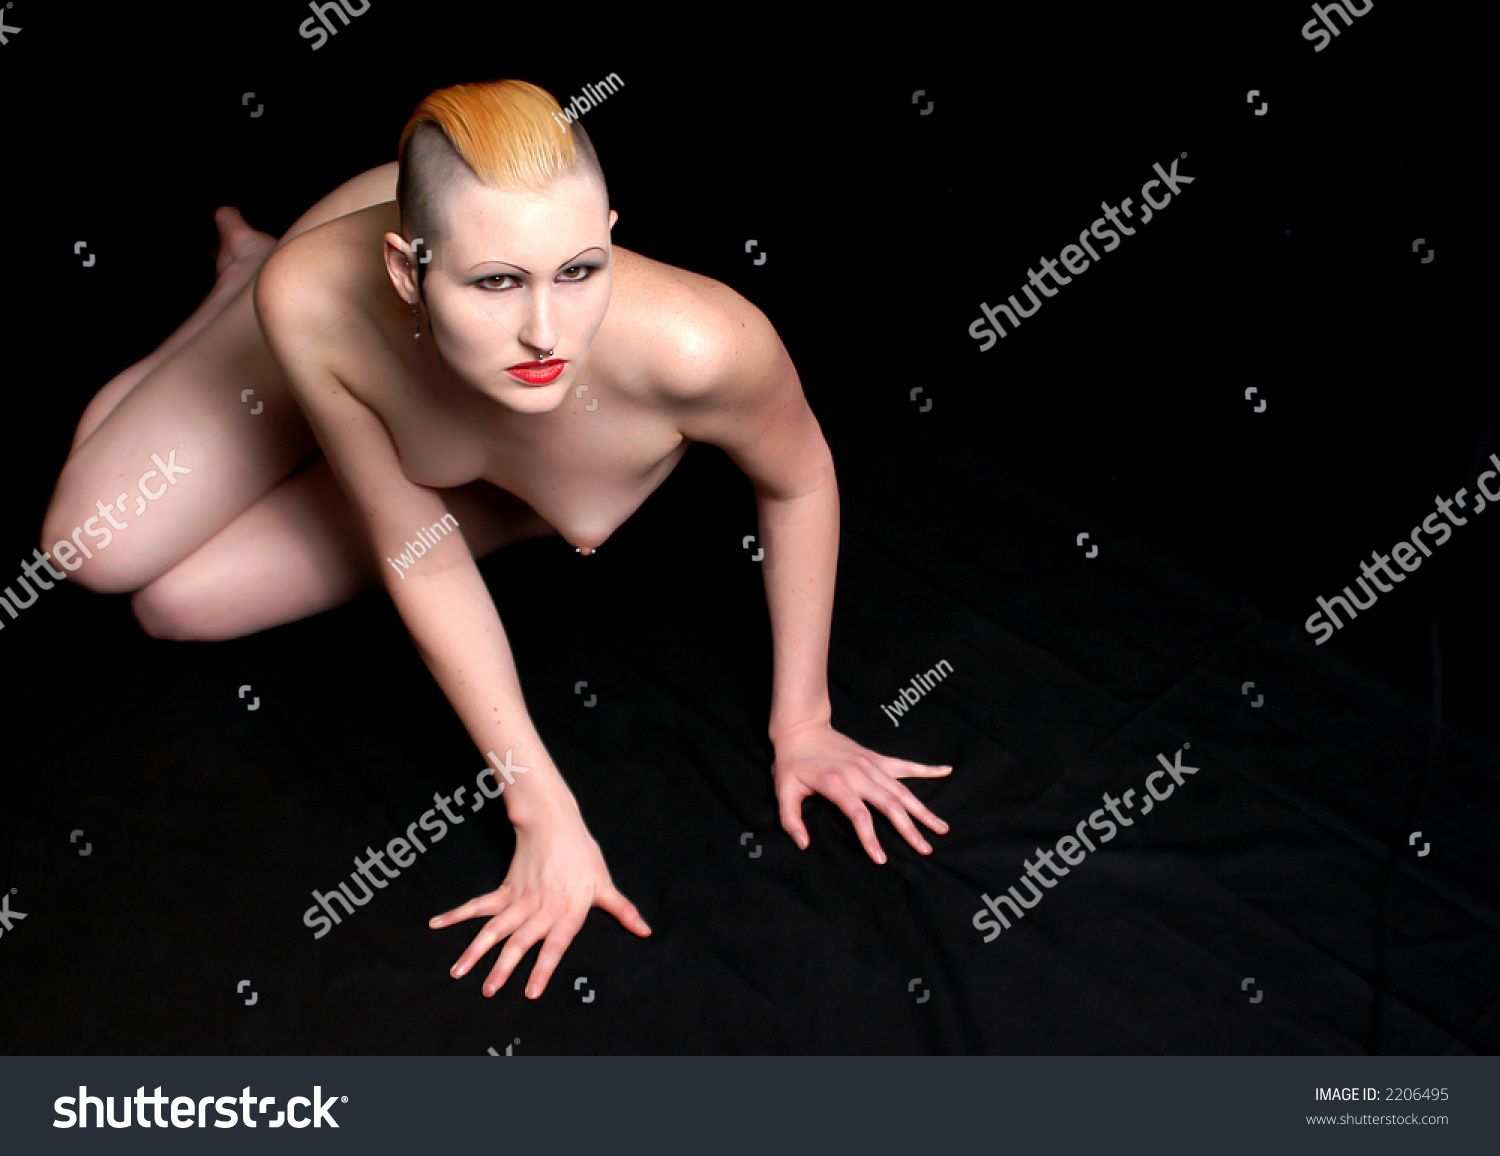 Nude Goth Girl Pics Great goth girl nude stock photo 2206495 - shutterstock